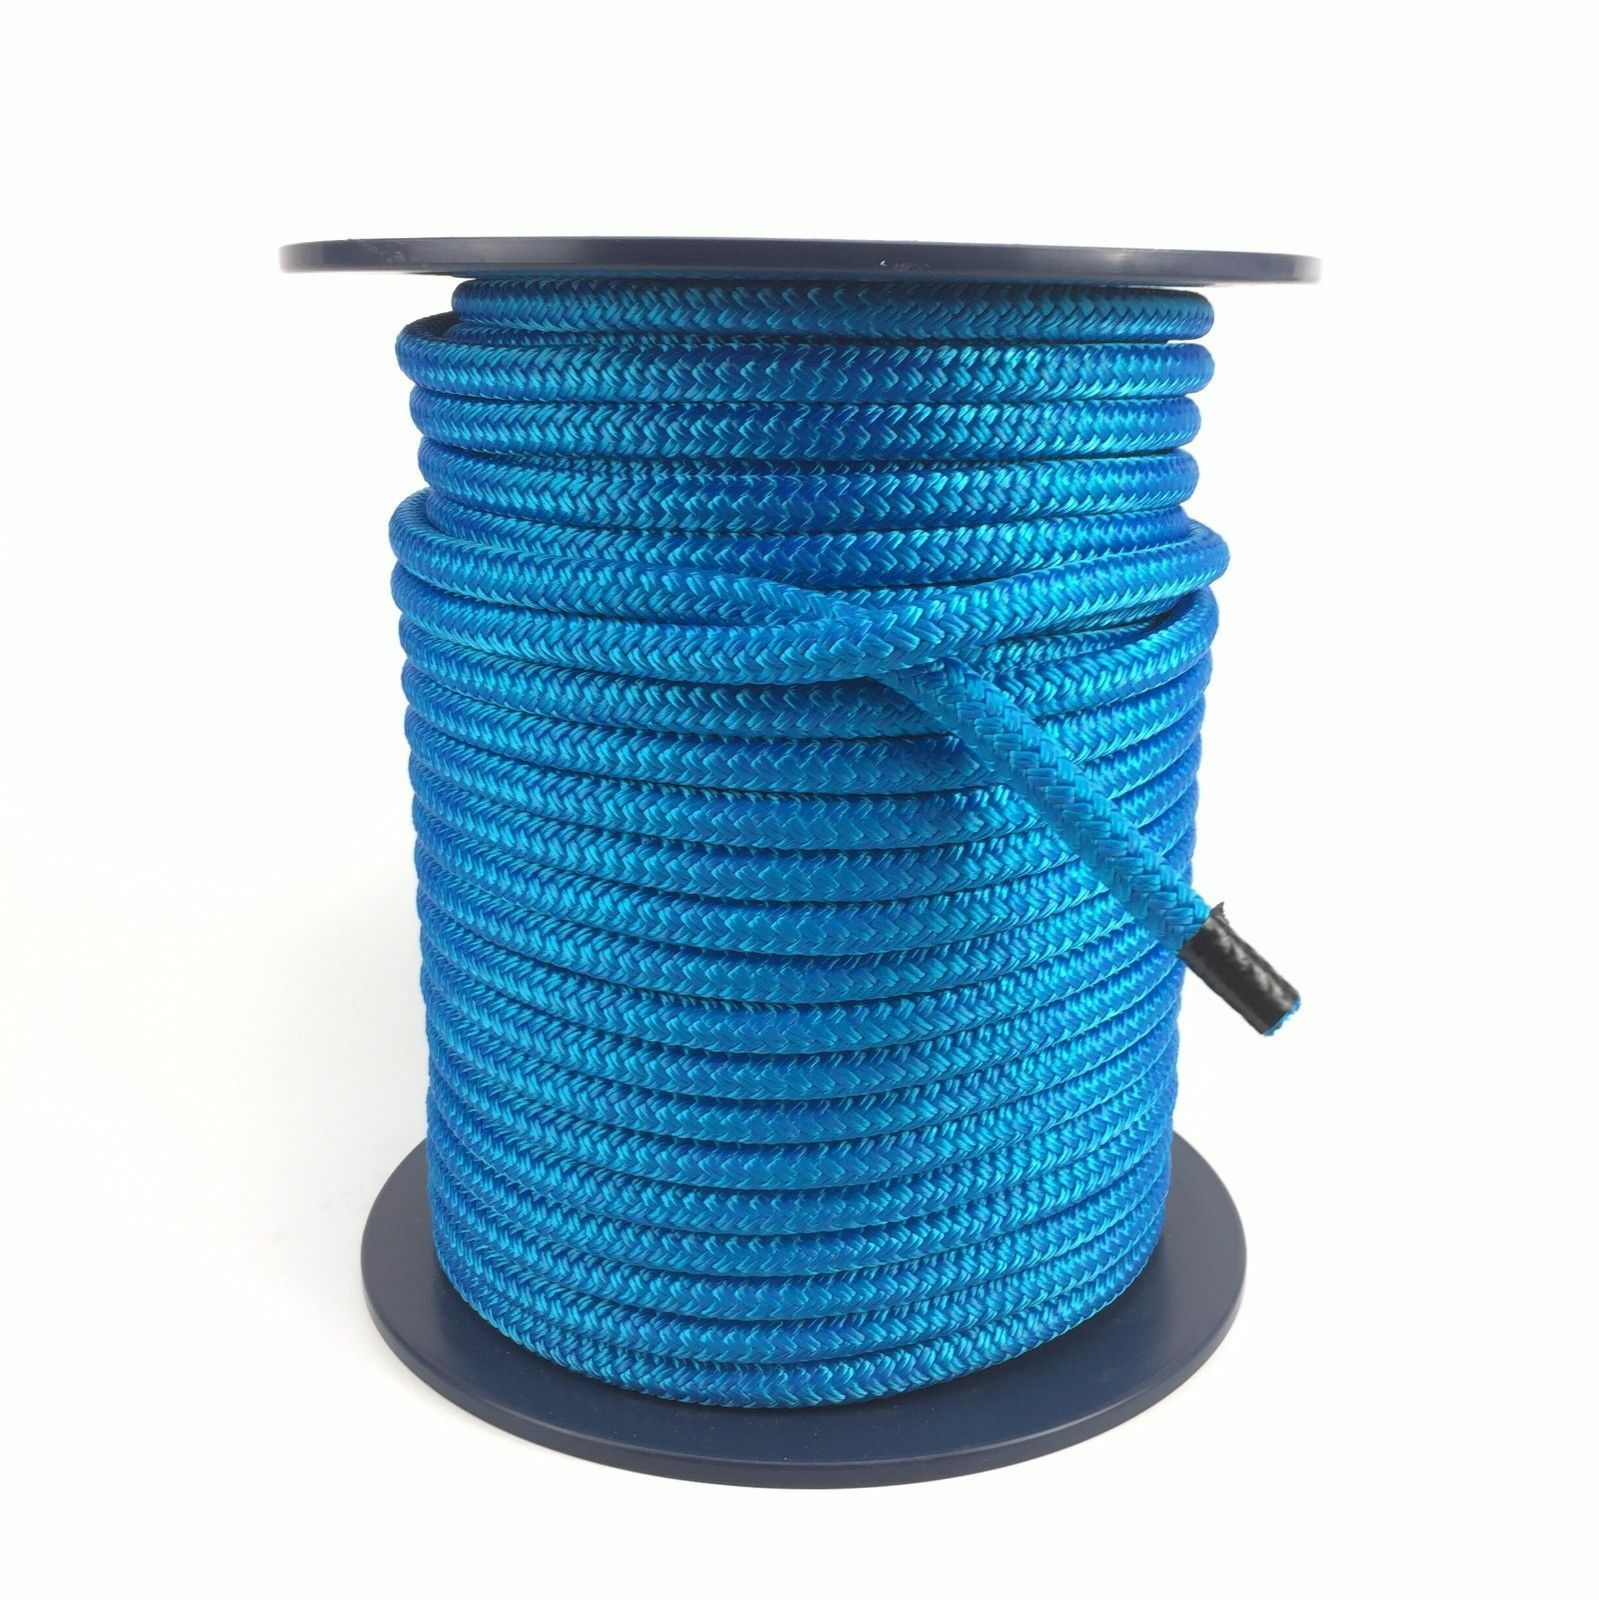 8mm Royal bluee Double Braid On Braid Polyester Rope x 40 Metres, Marine, Boats